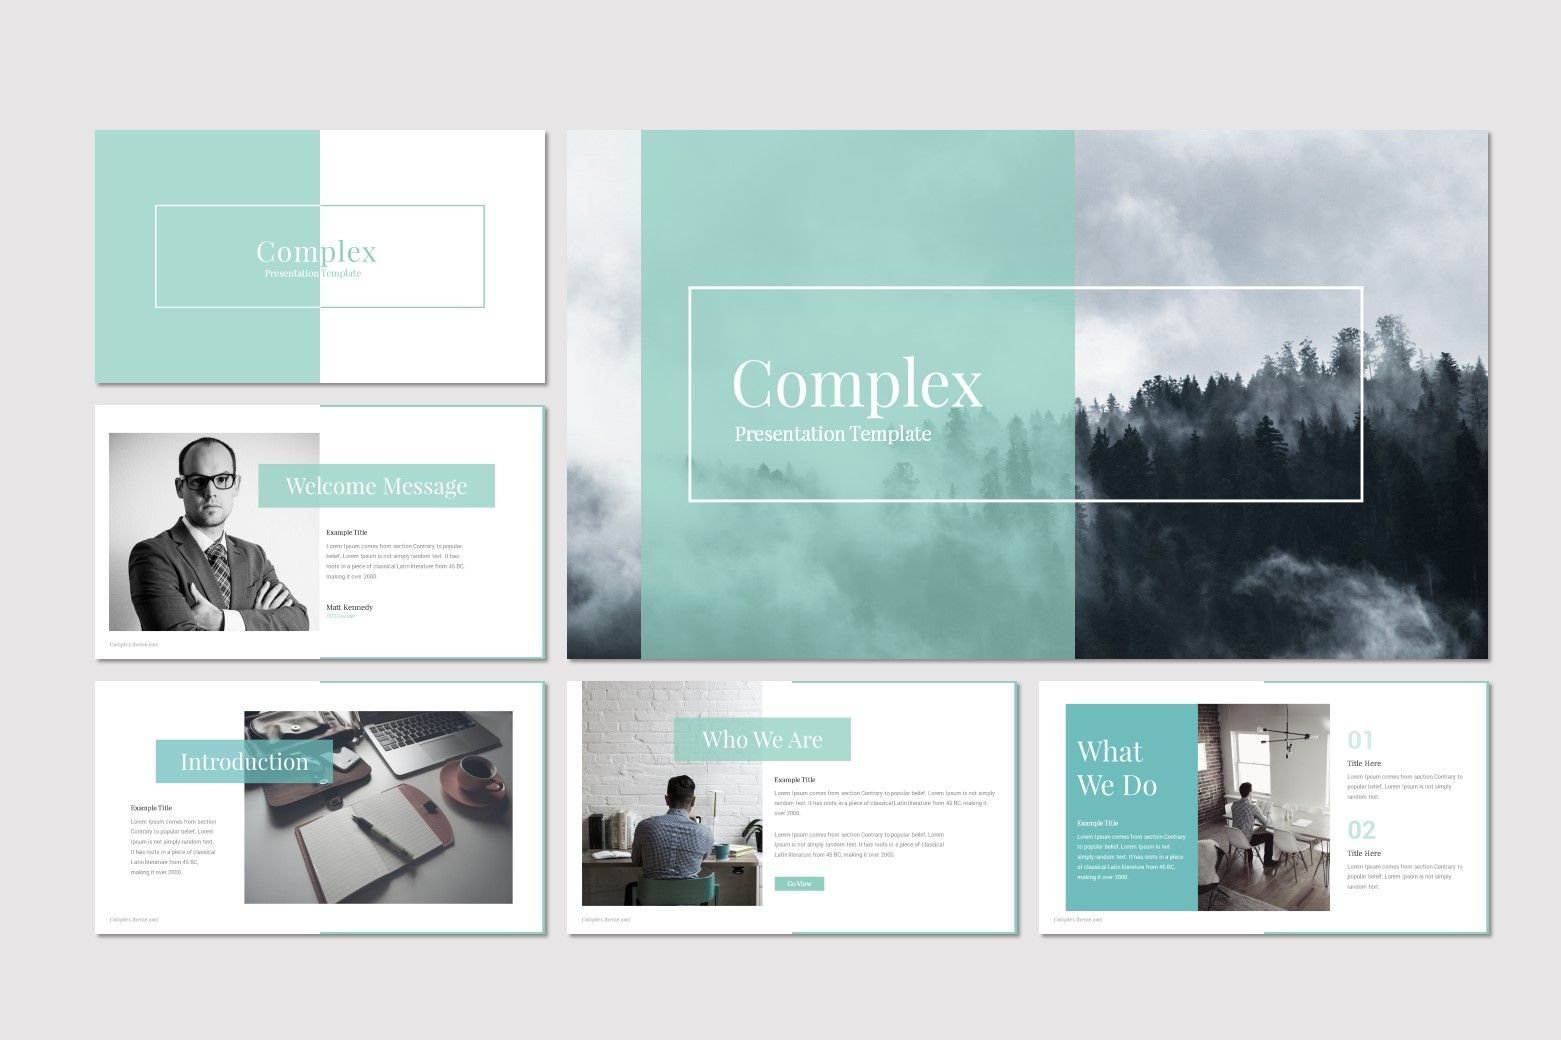 Complex - PowerPoint Template, Slide 2, 07668, Presentation Templates — PoweredTemplate.com